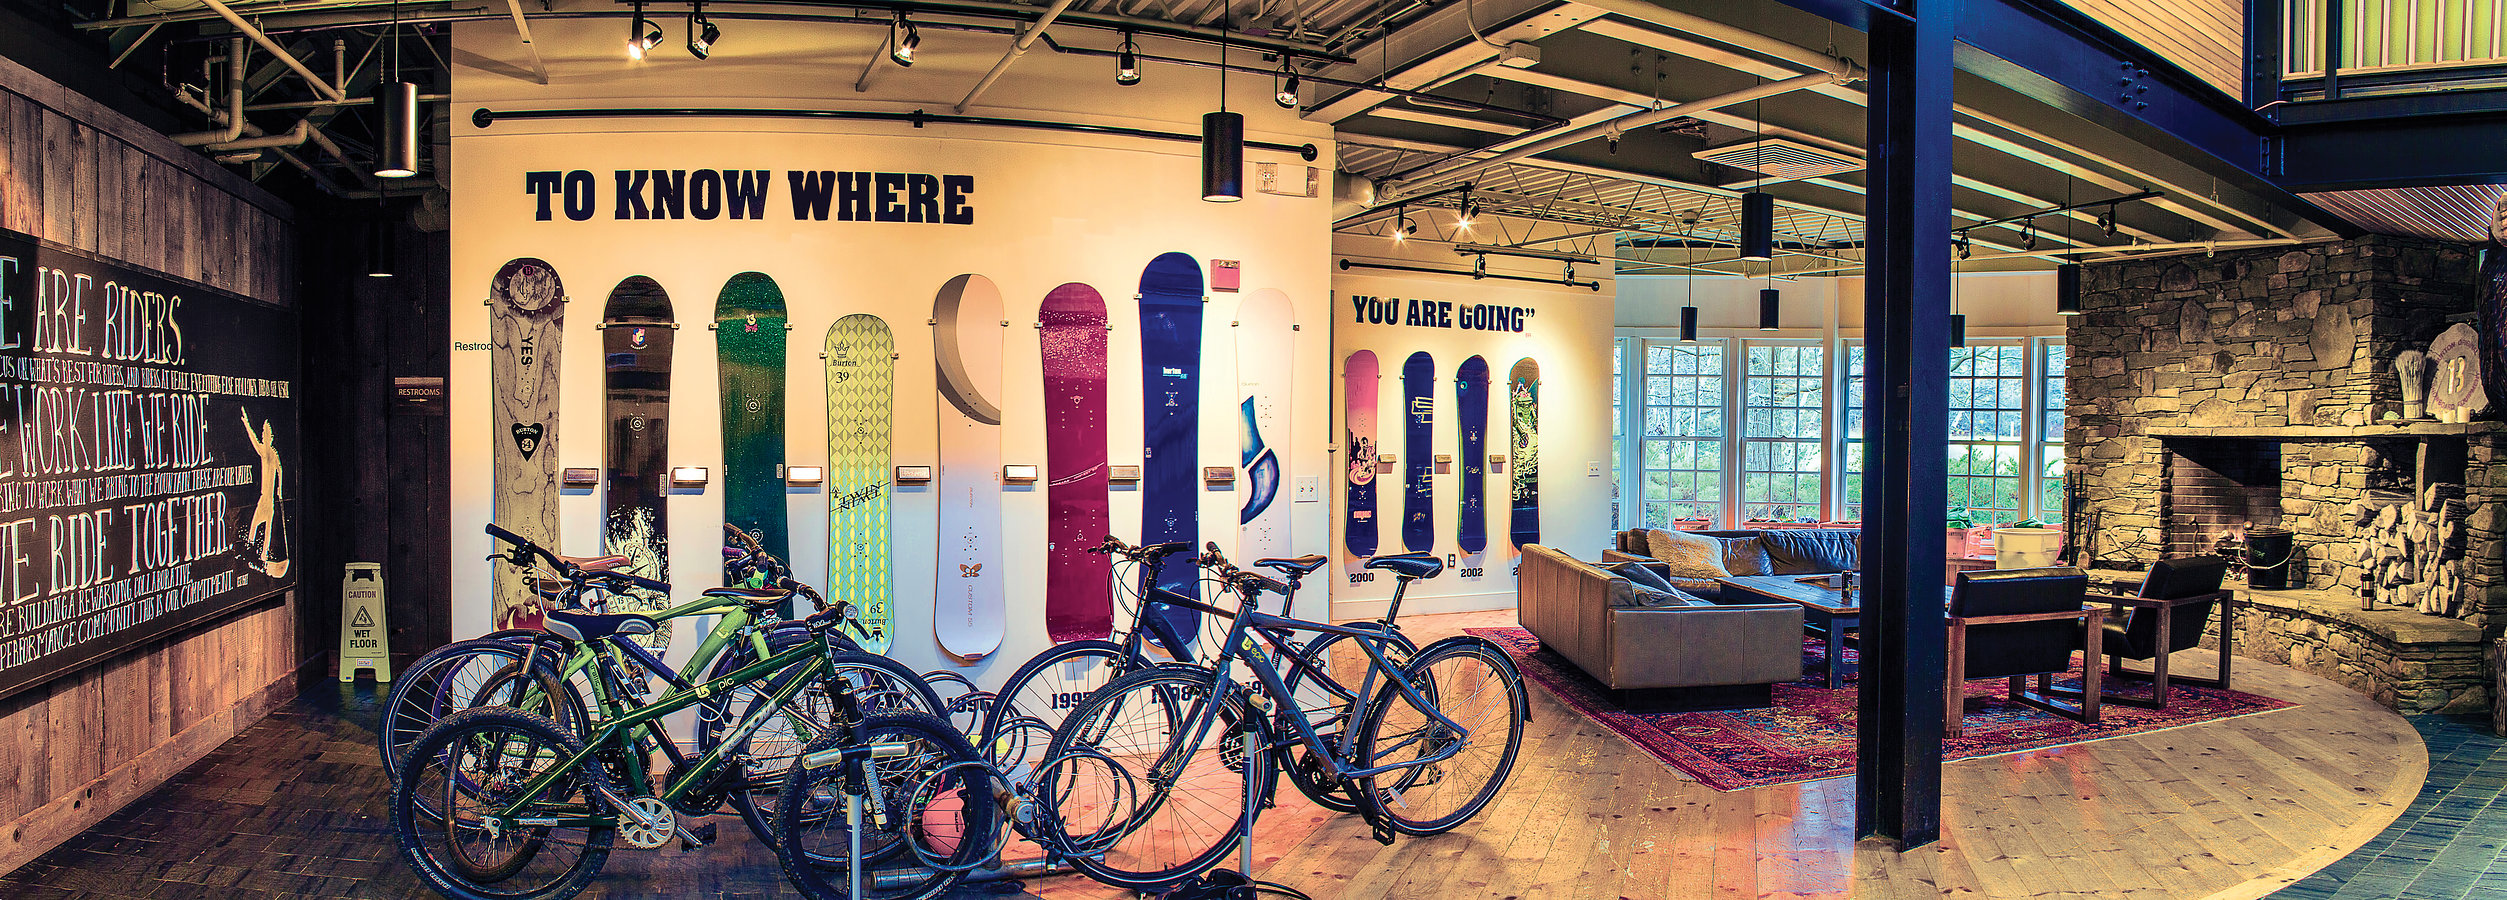 Burton Snowboards US Head quarters featured in Destination Vermont Magazine